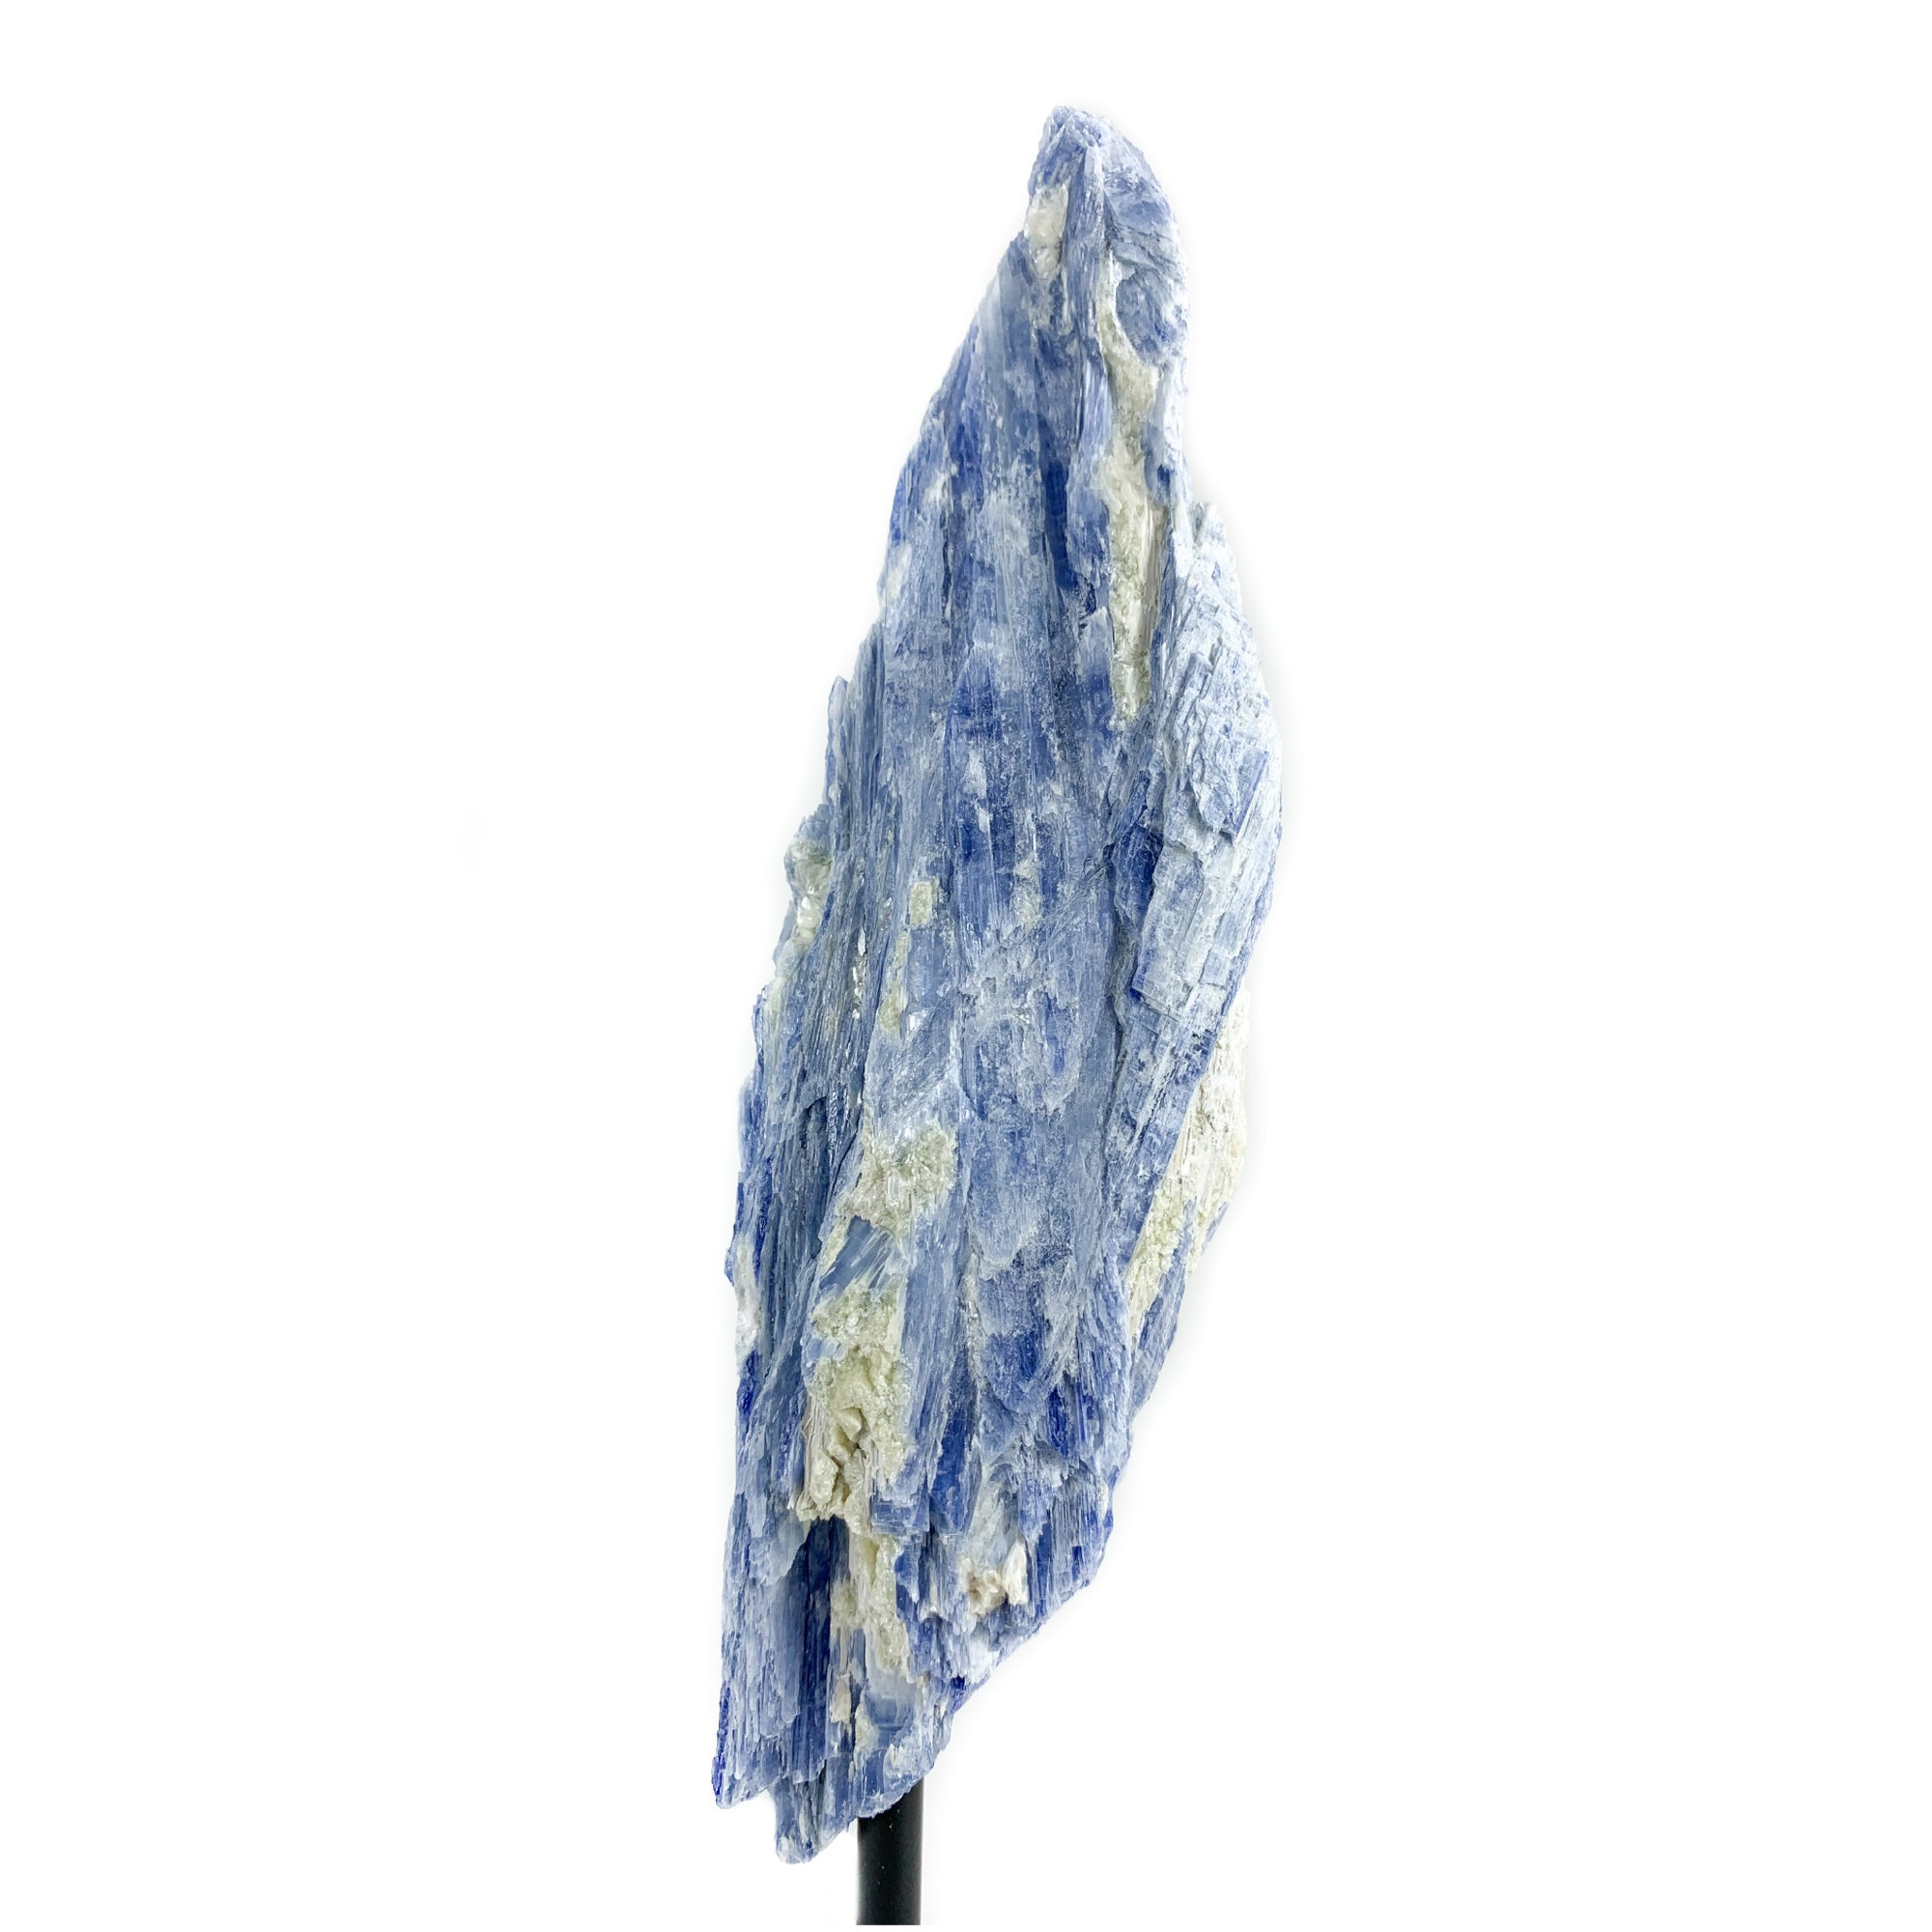 Large Blue Kyanite Crystal with Quartz and Muscovite